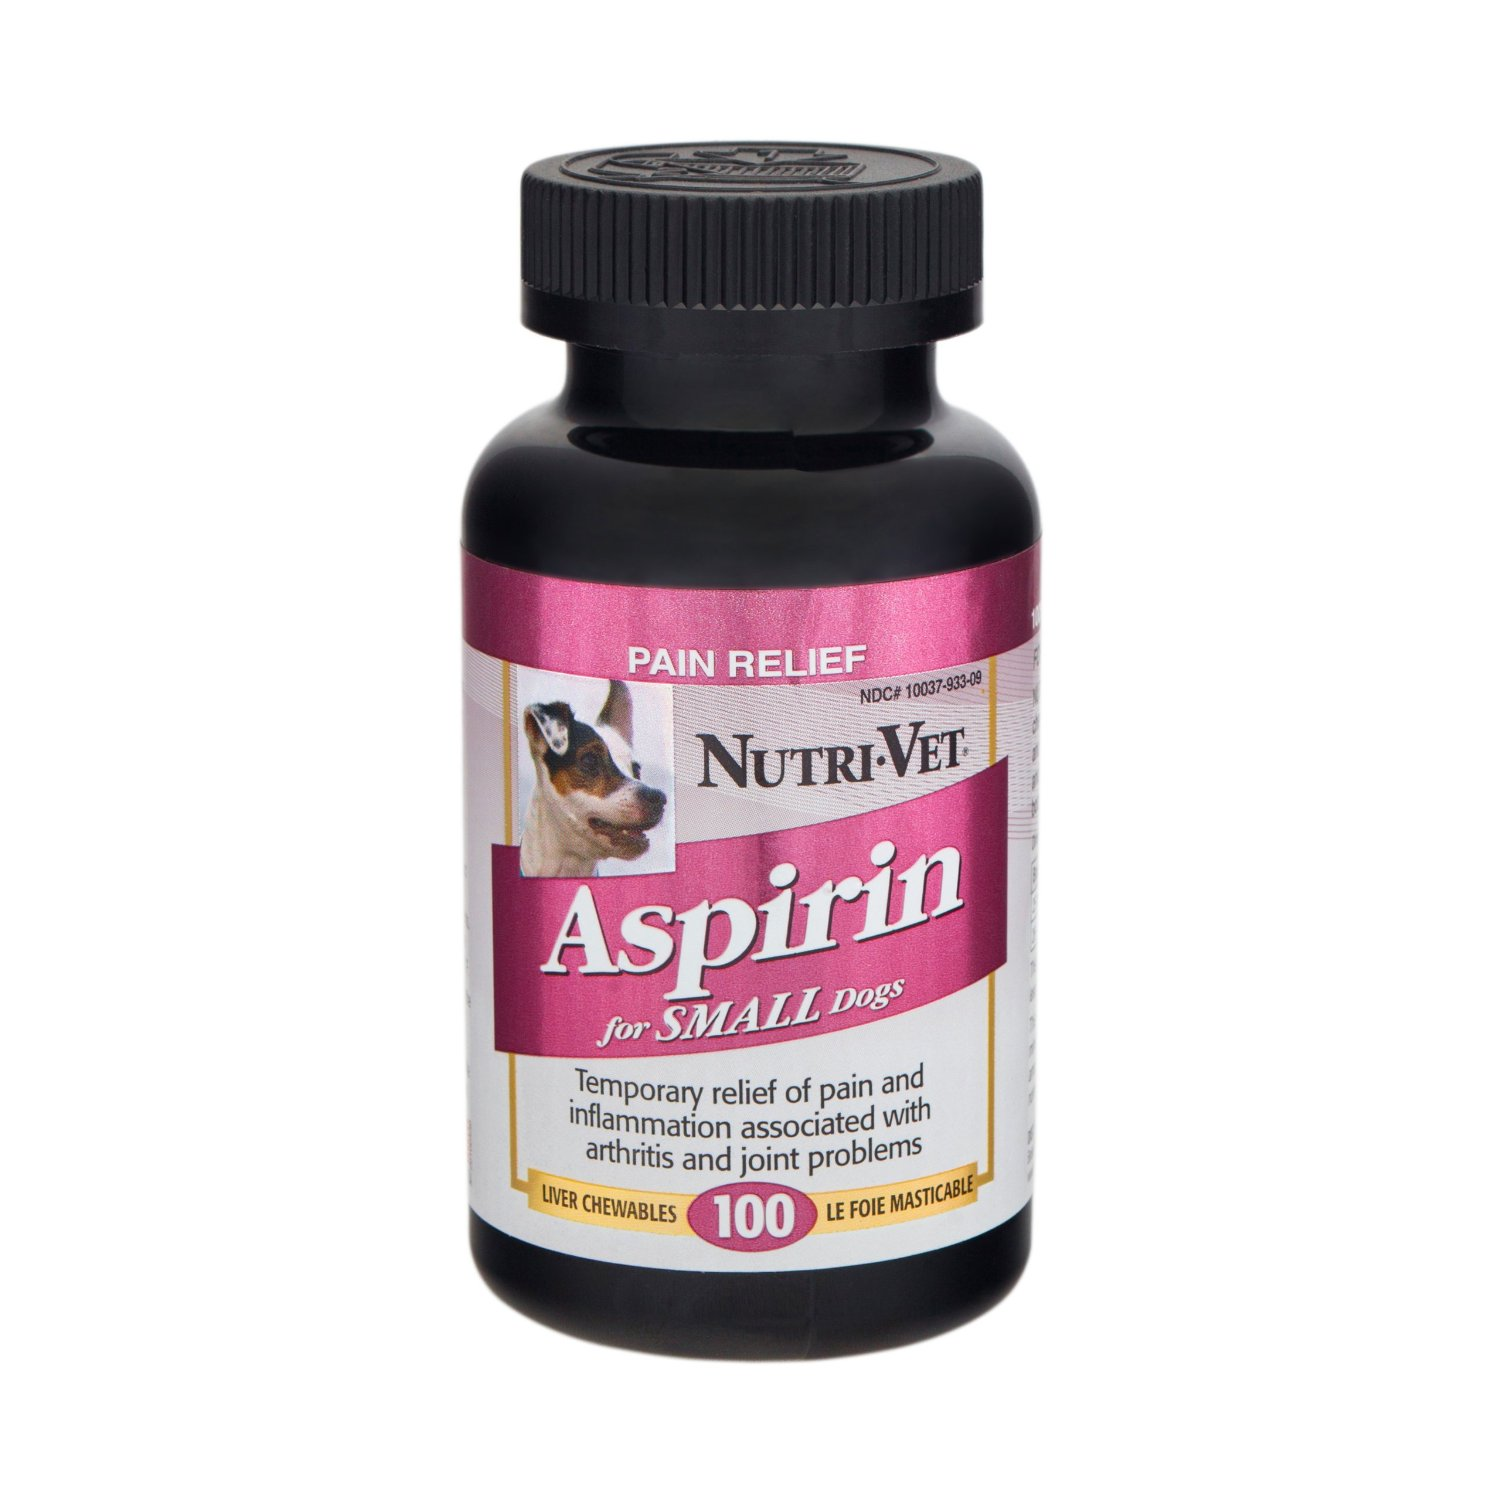 Nutri-Vet K-9 Aspirin Chewables for Small Dogs